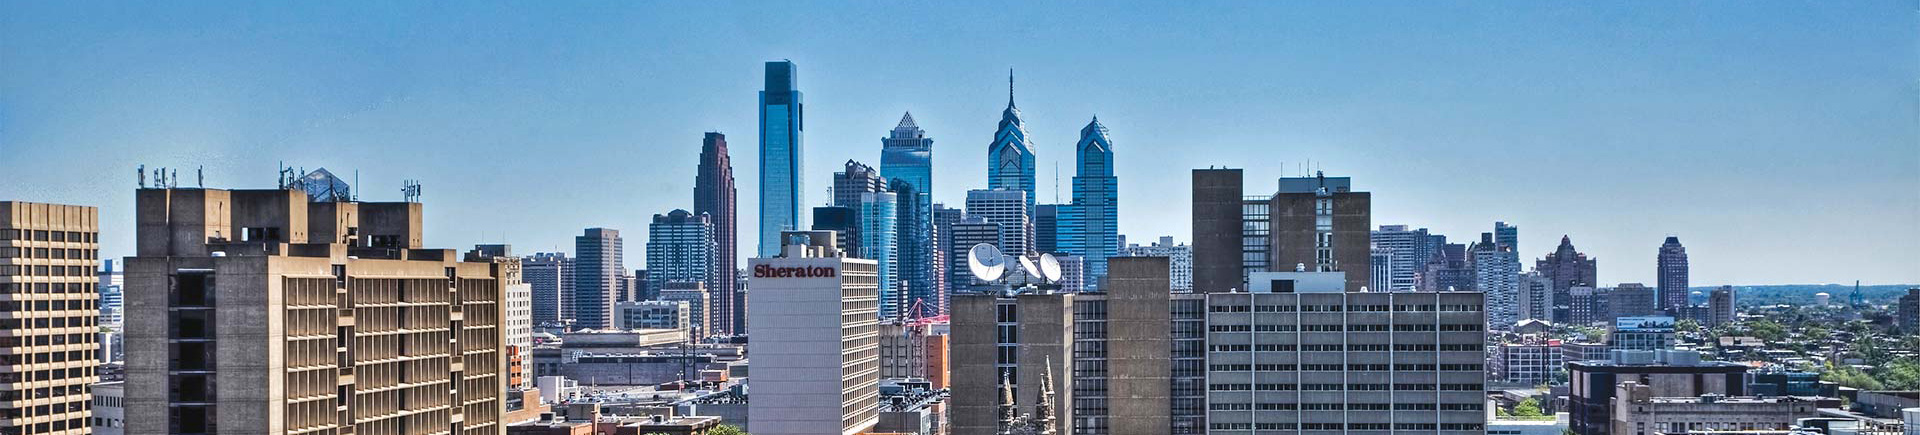 Chestnut Hall Apartments in Philadelphia, PA - Center City Skyline